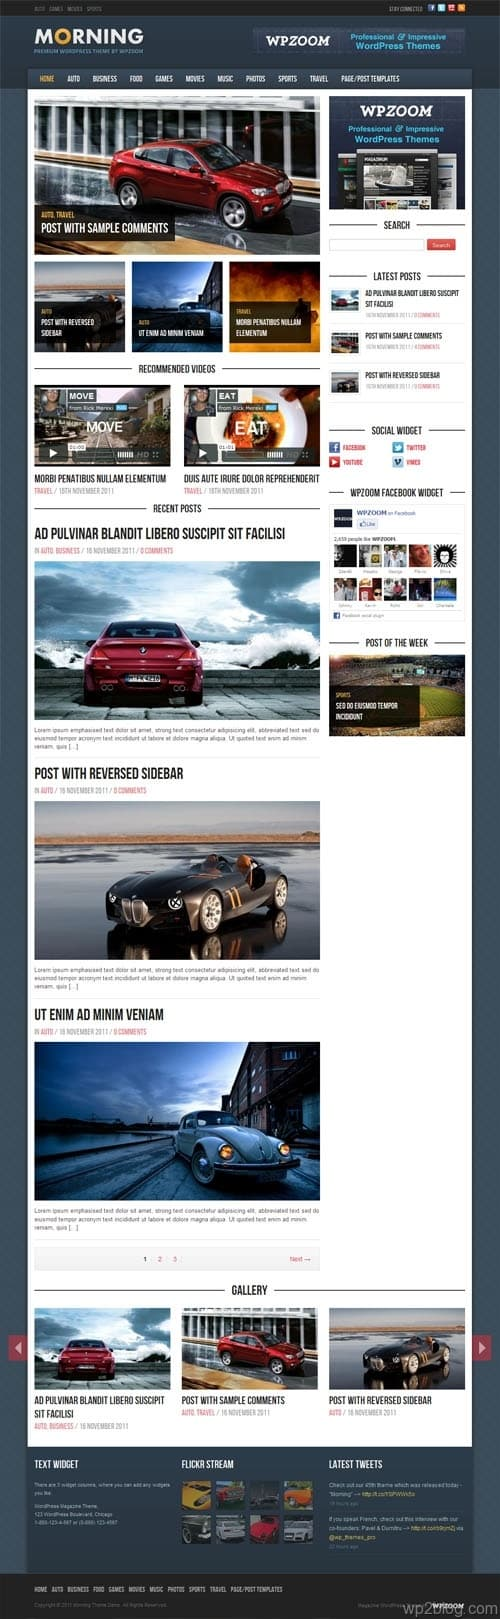 WordPress Magazine Theme